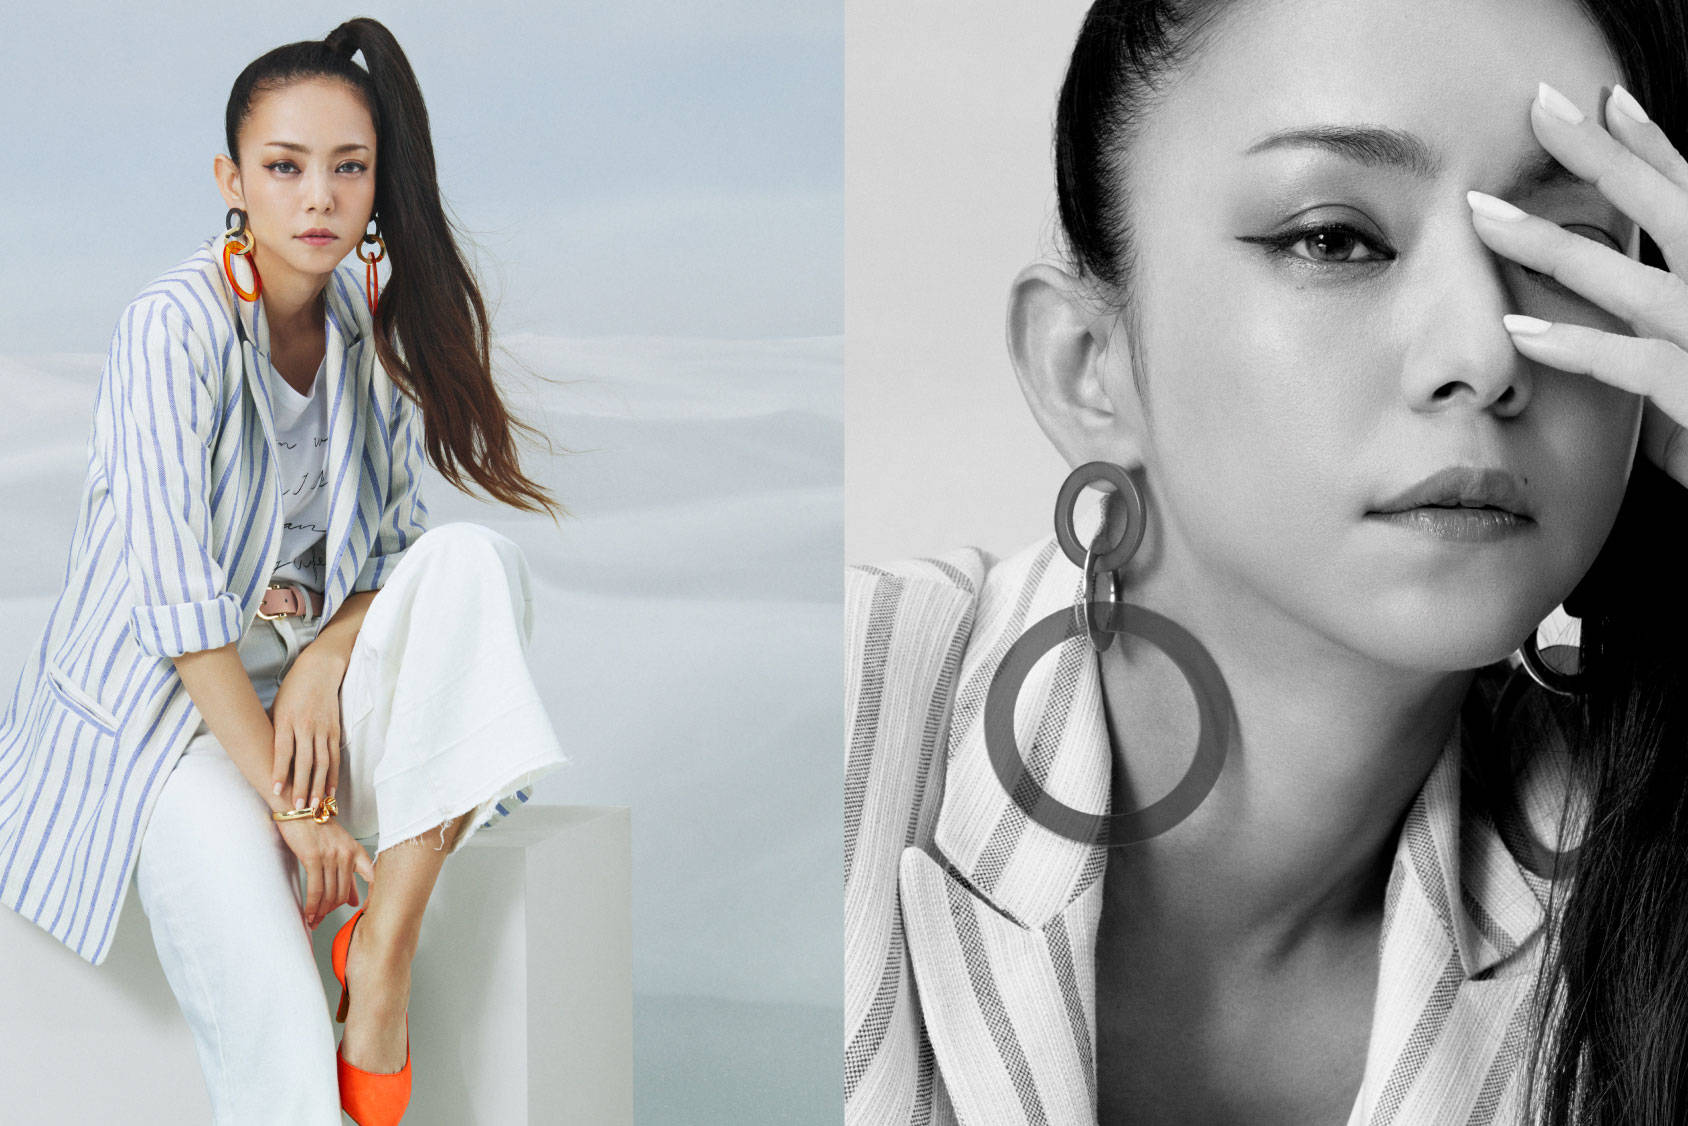 Announcing the release of all Namie Amuro x H&M campaign images!